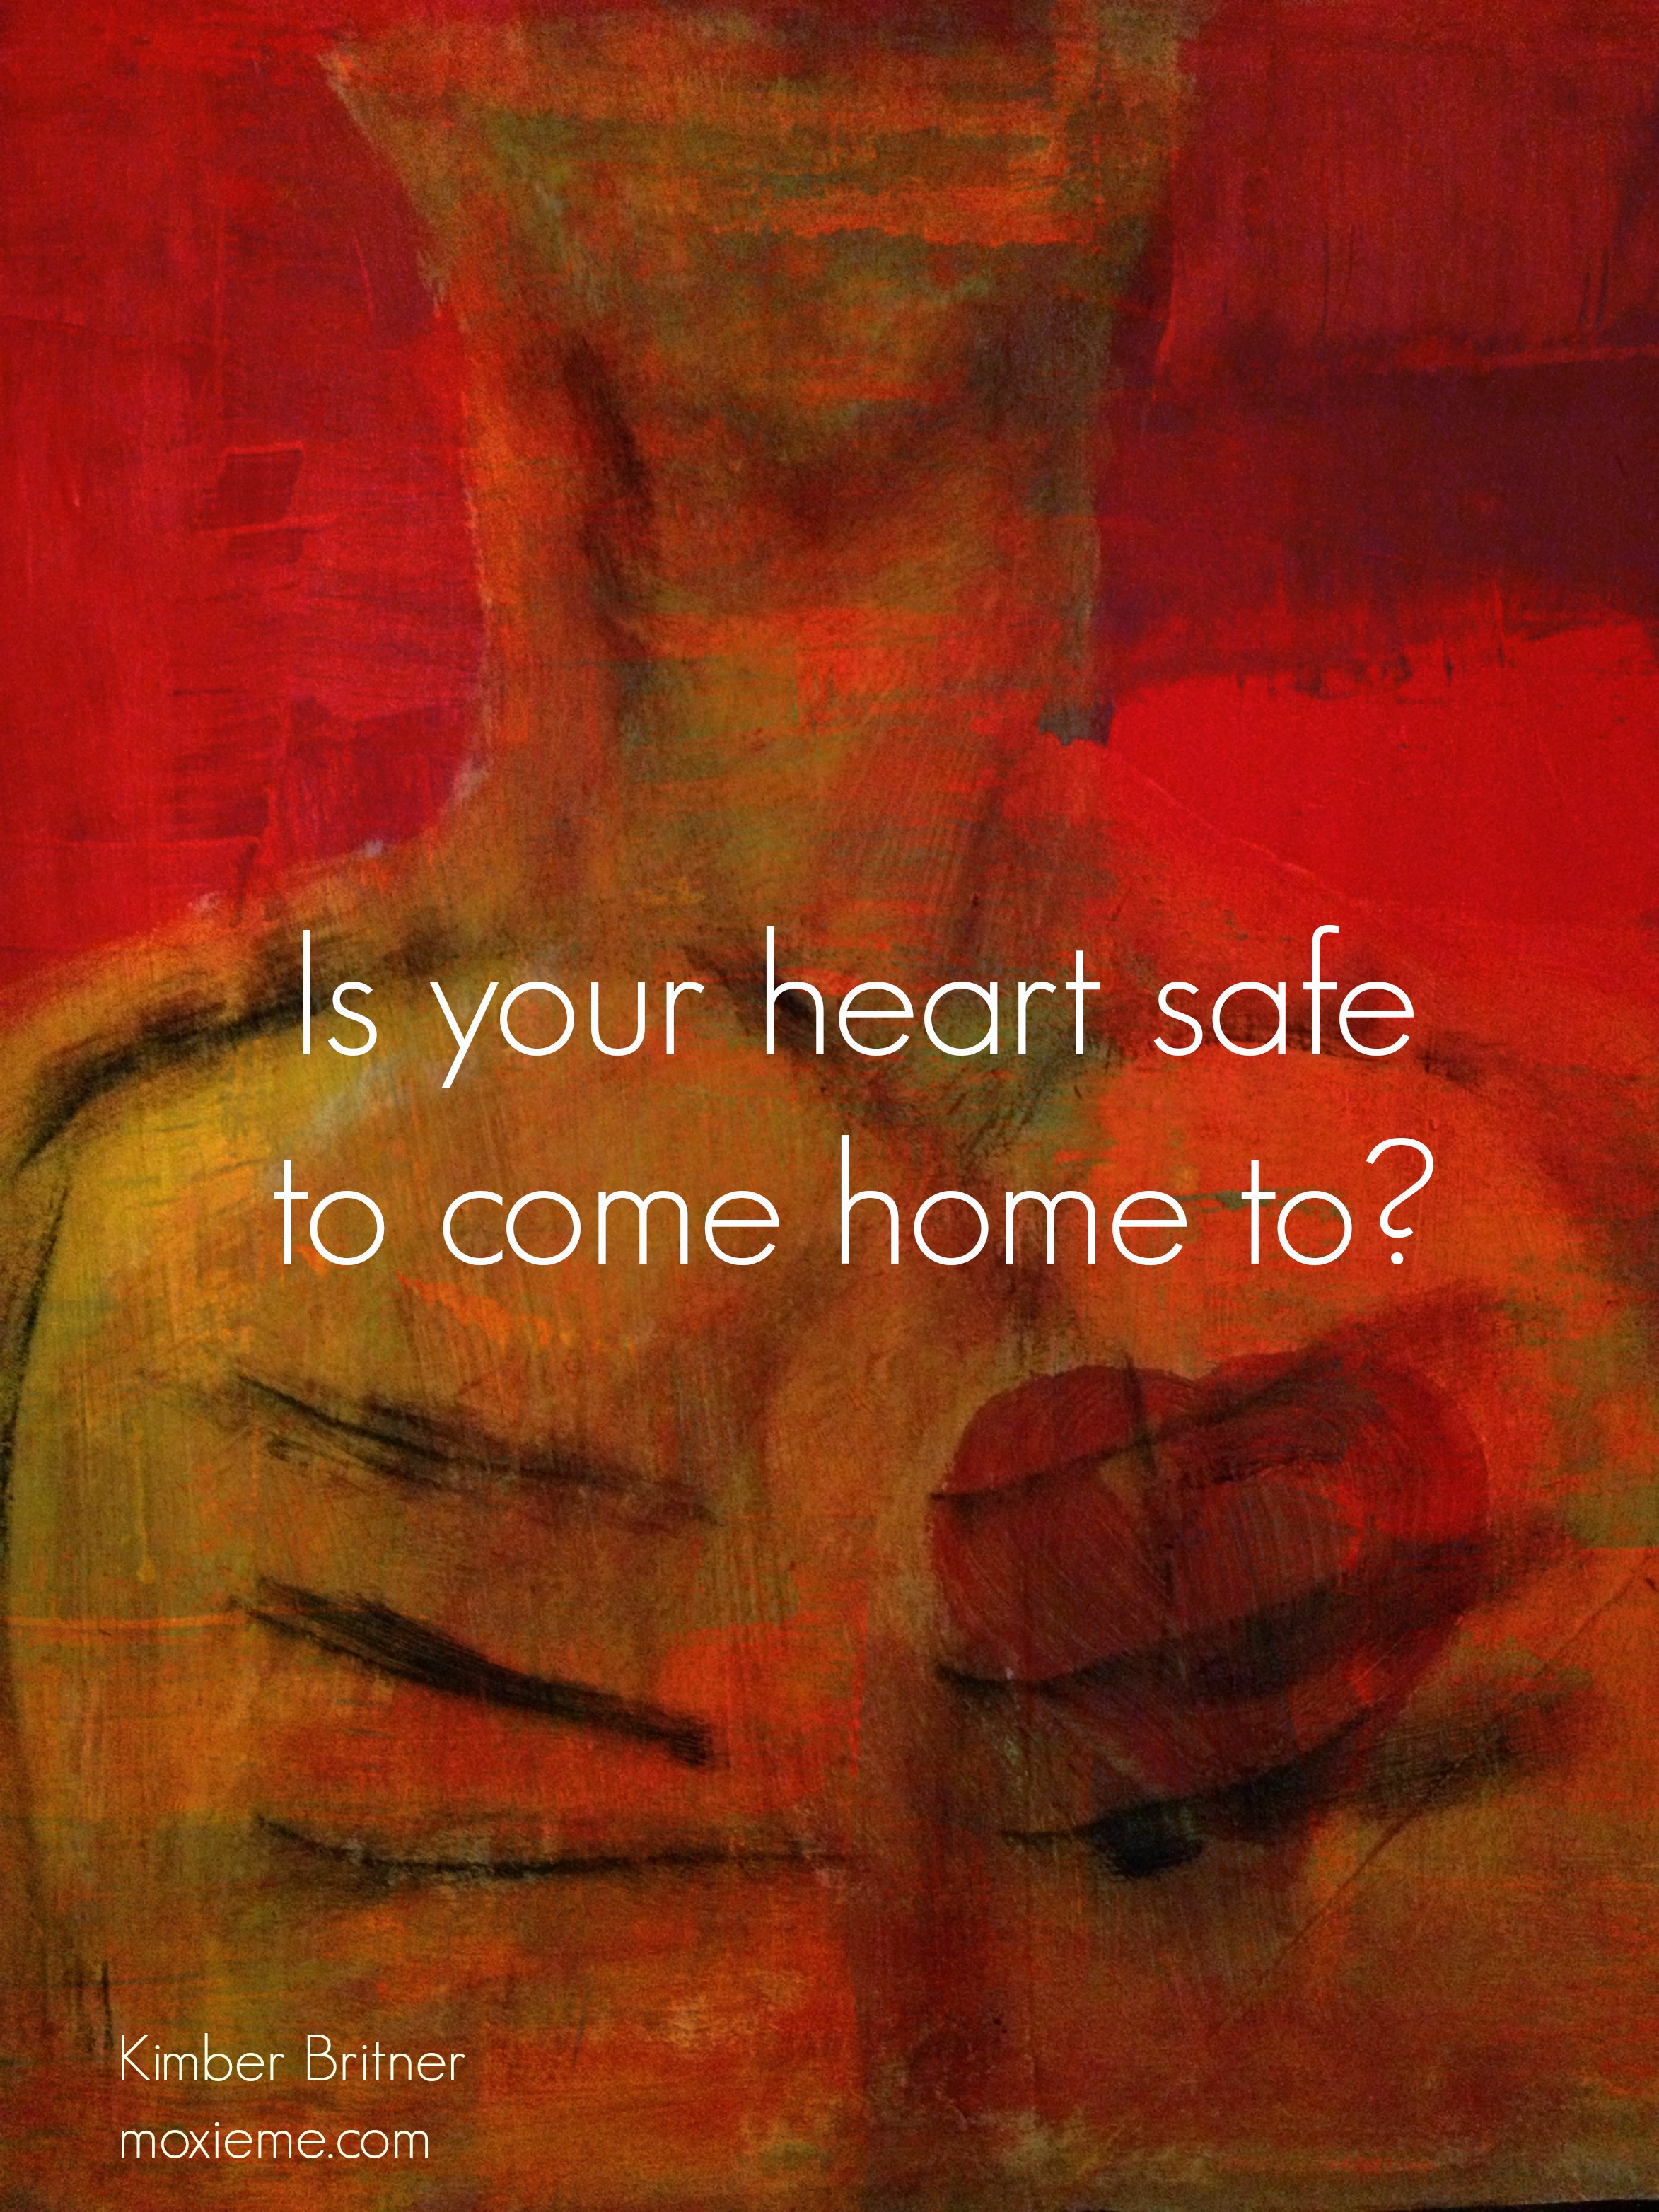 Is your heart safe